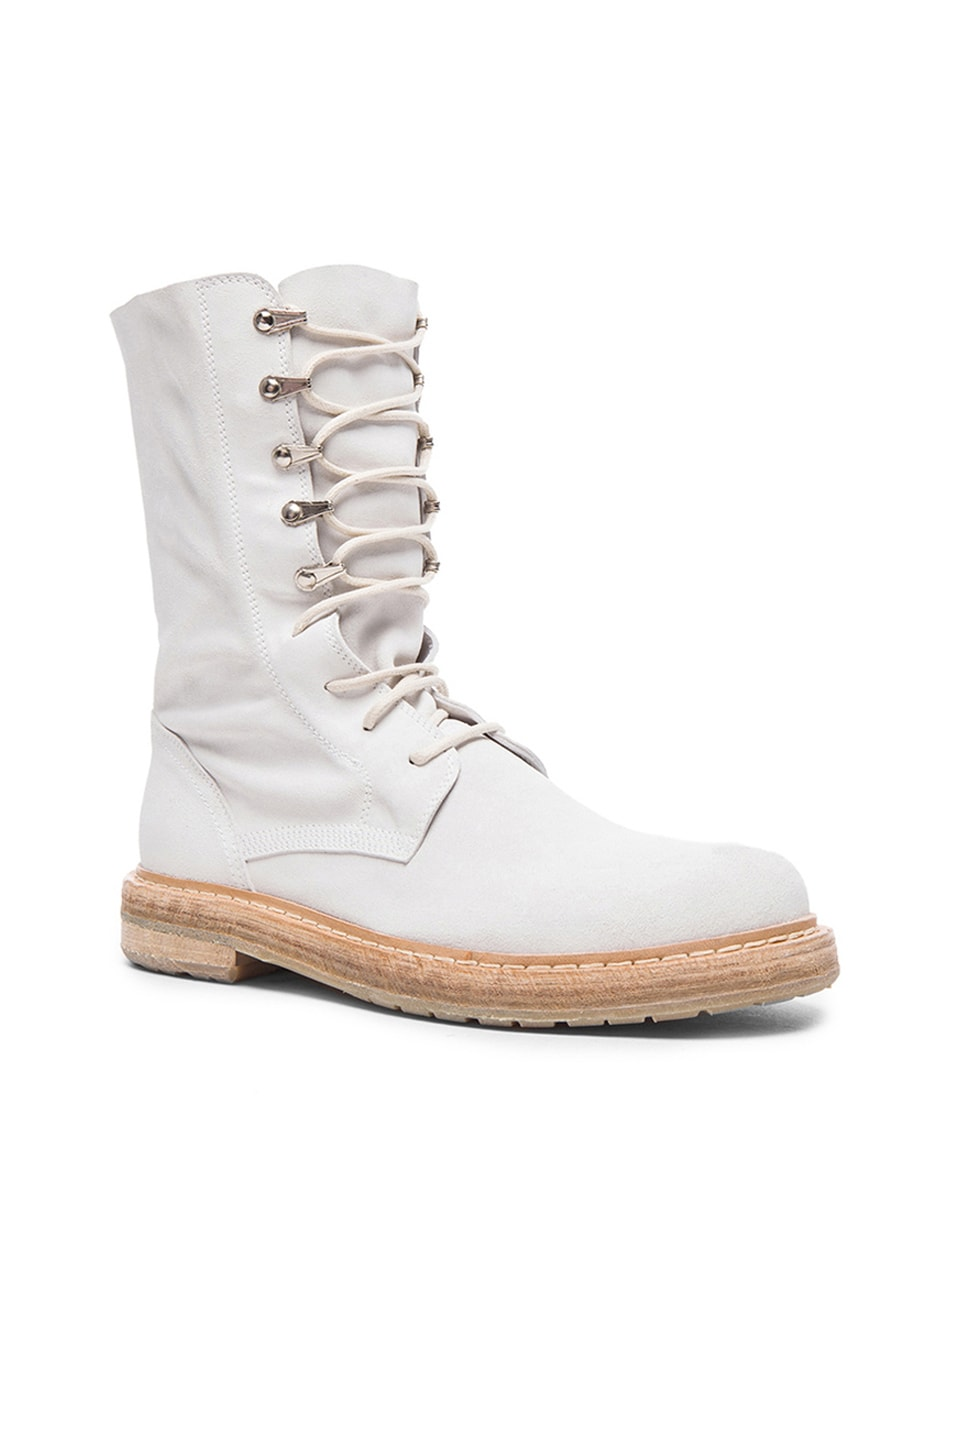 Image 1 of AD Ann Demeulemeester Suede Lace Up Combat Boots in White